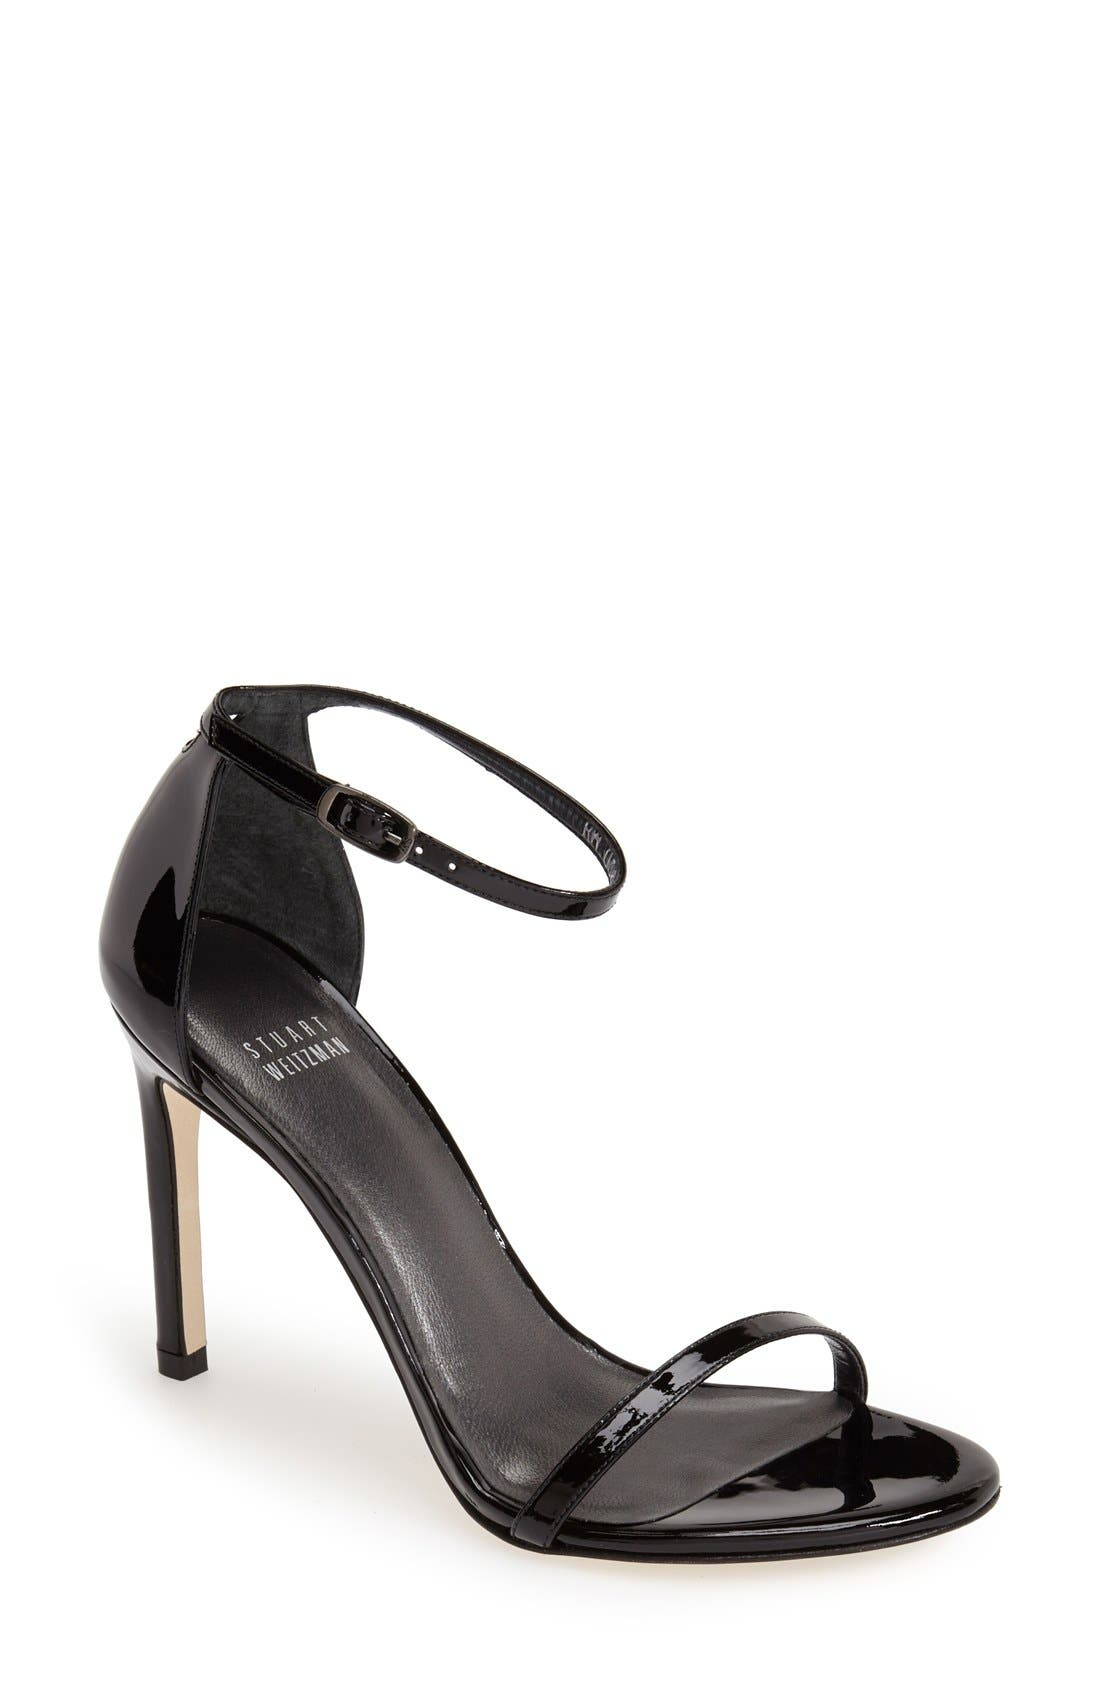 Nudistsong Ankle Strap Sandal,                         Main,                         color, BLACK PATENT